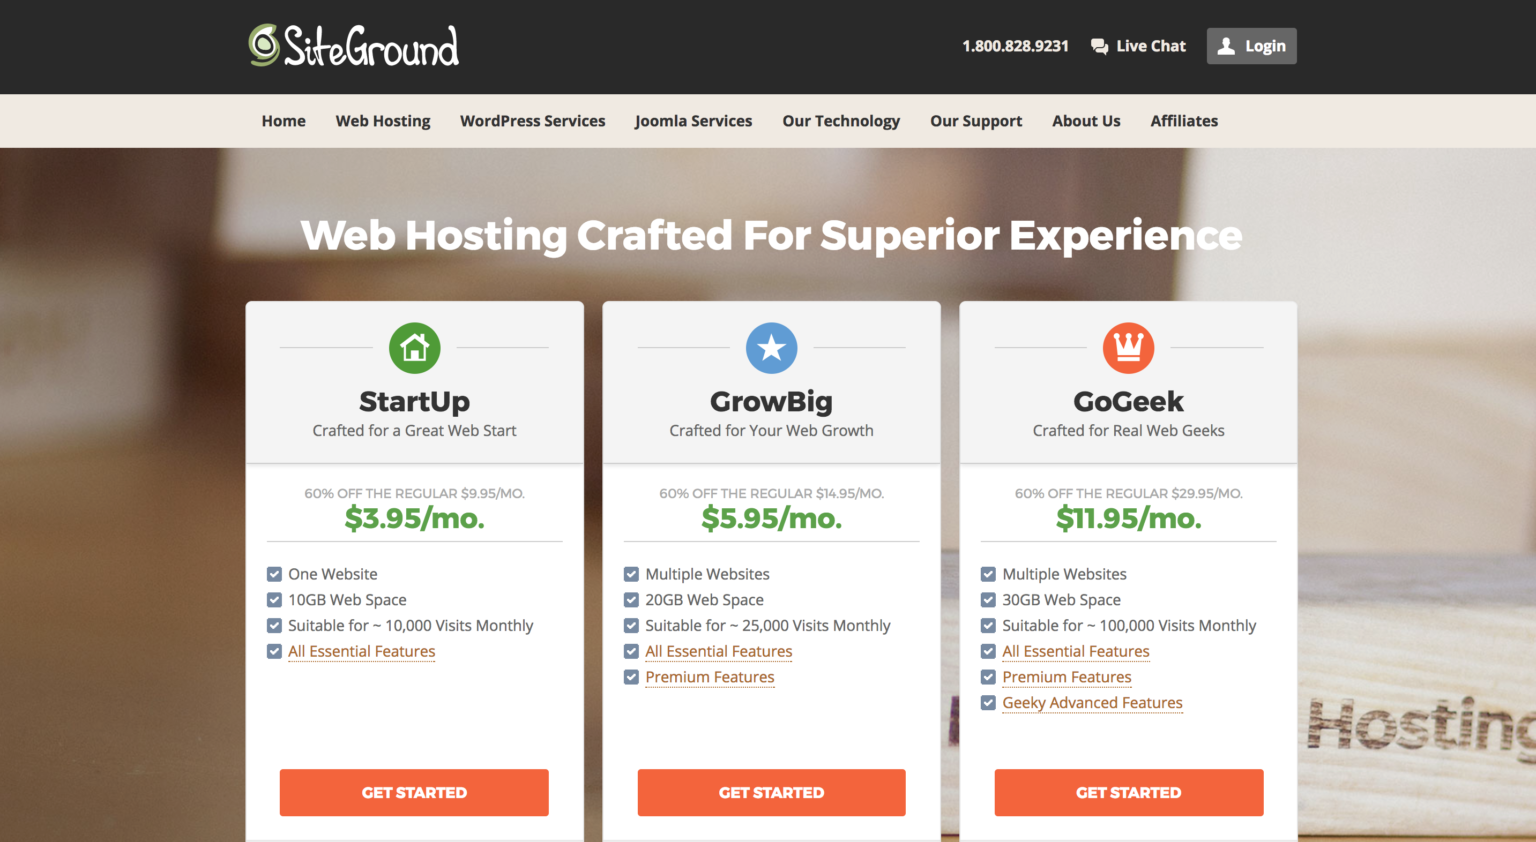 siteground shared hosting offers